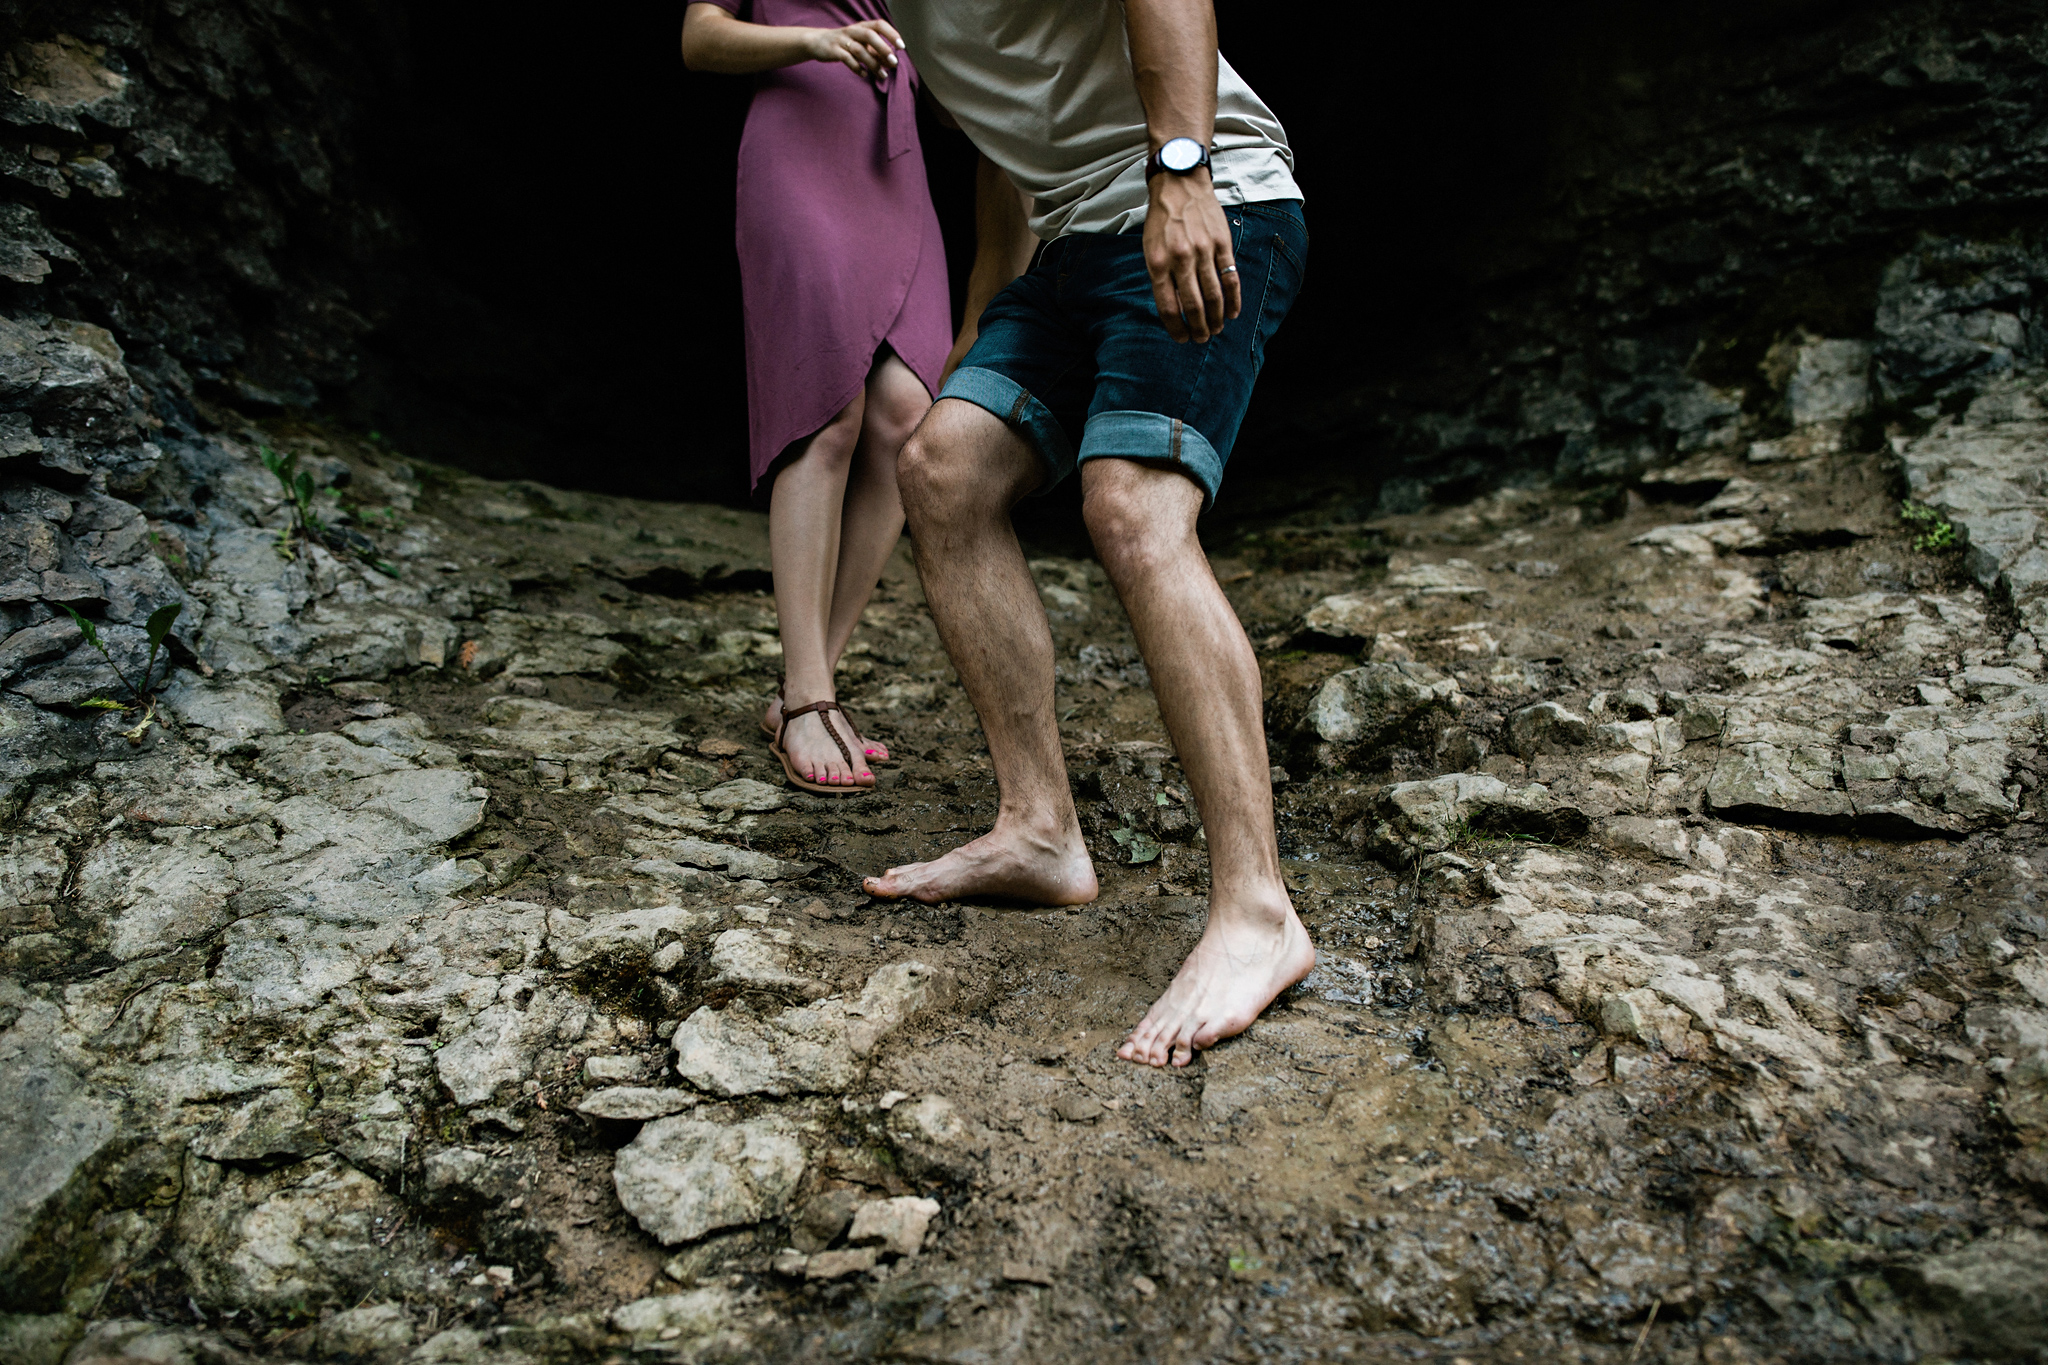 238-romantic-summer-elora-gorge-sunset-engagement-session.jpg